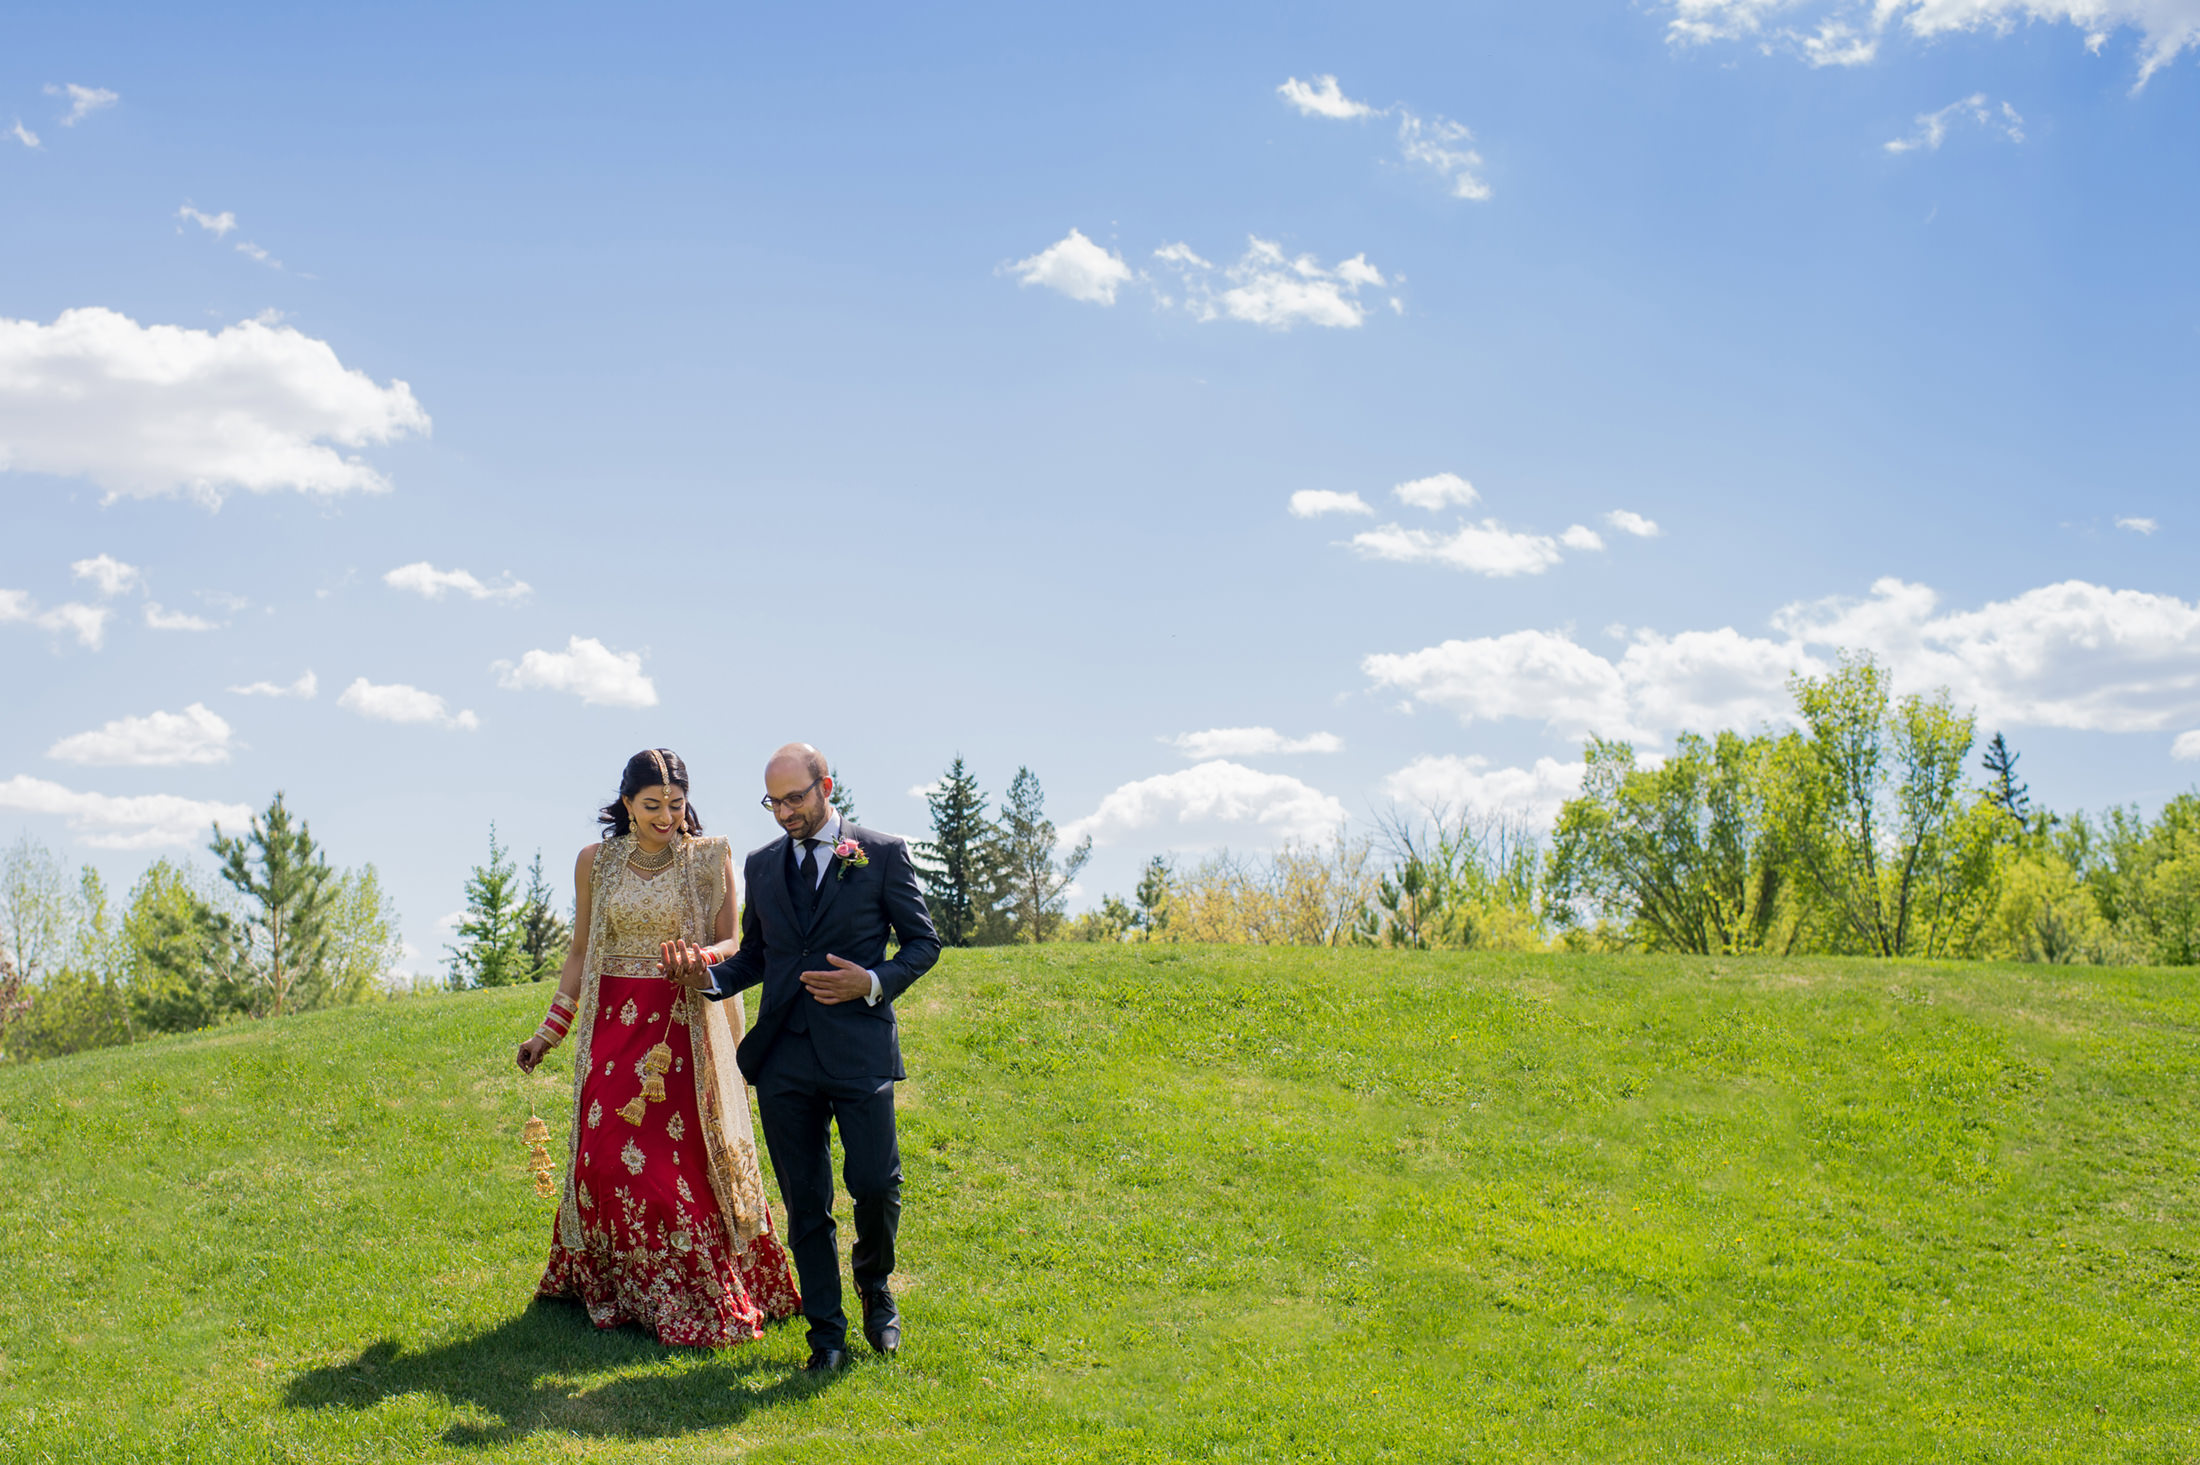 Edmonton_wedding_photographers_enjoy_center_wedding_Kiran_faisal_14.jpg